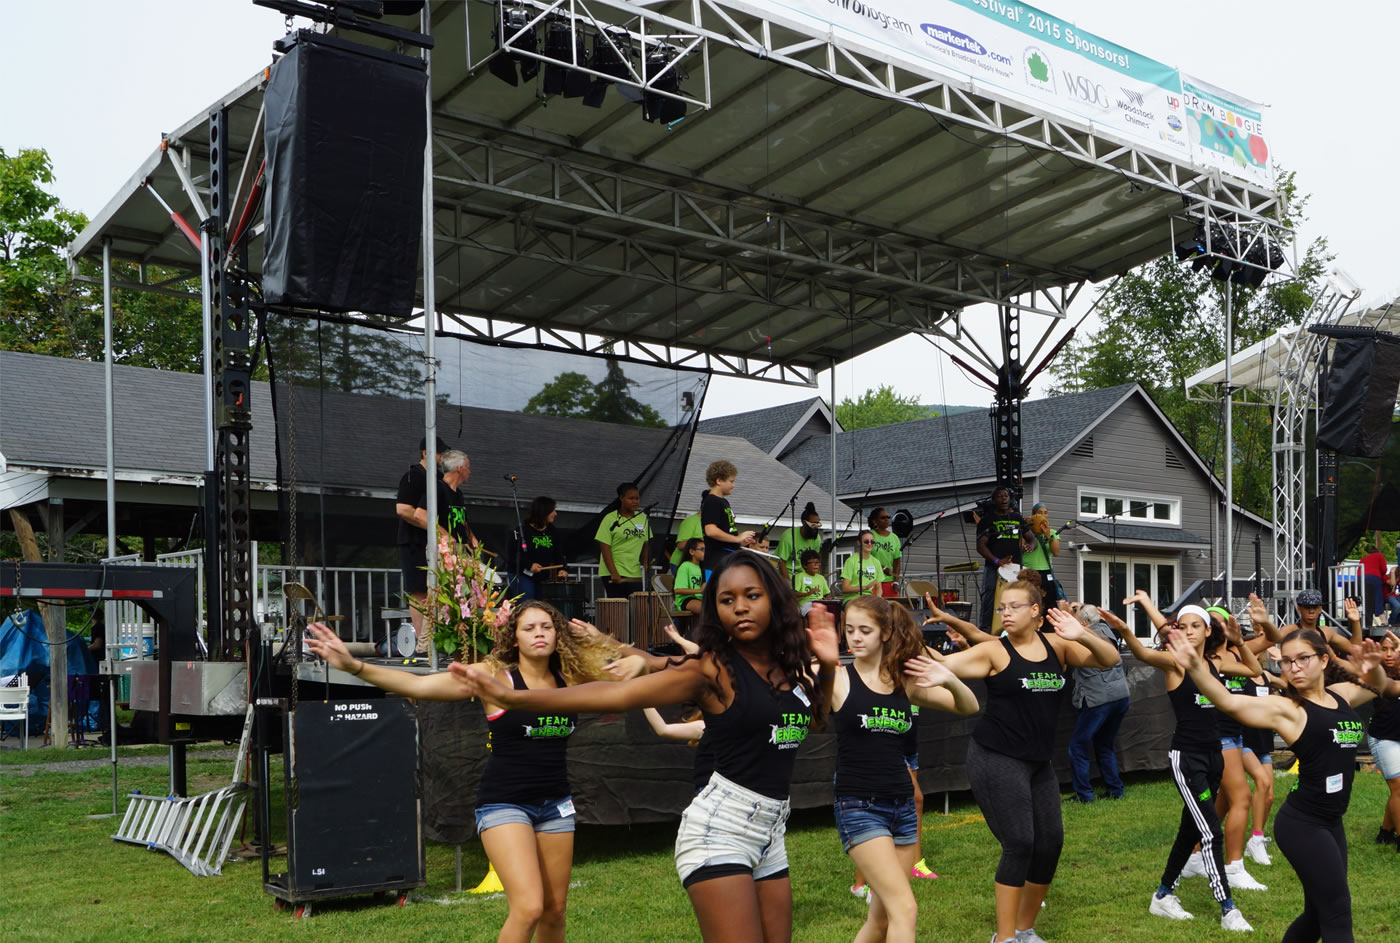 11:30 AM - POOK and Energy Dance Company